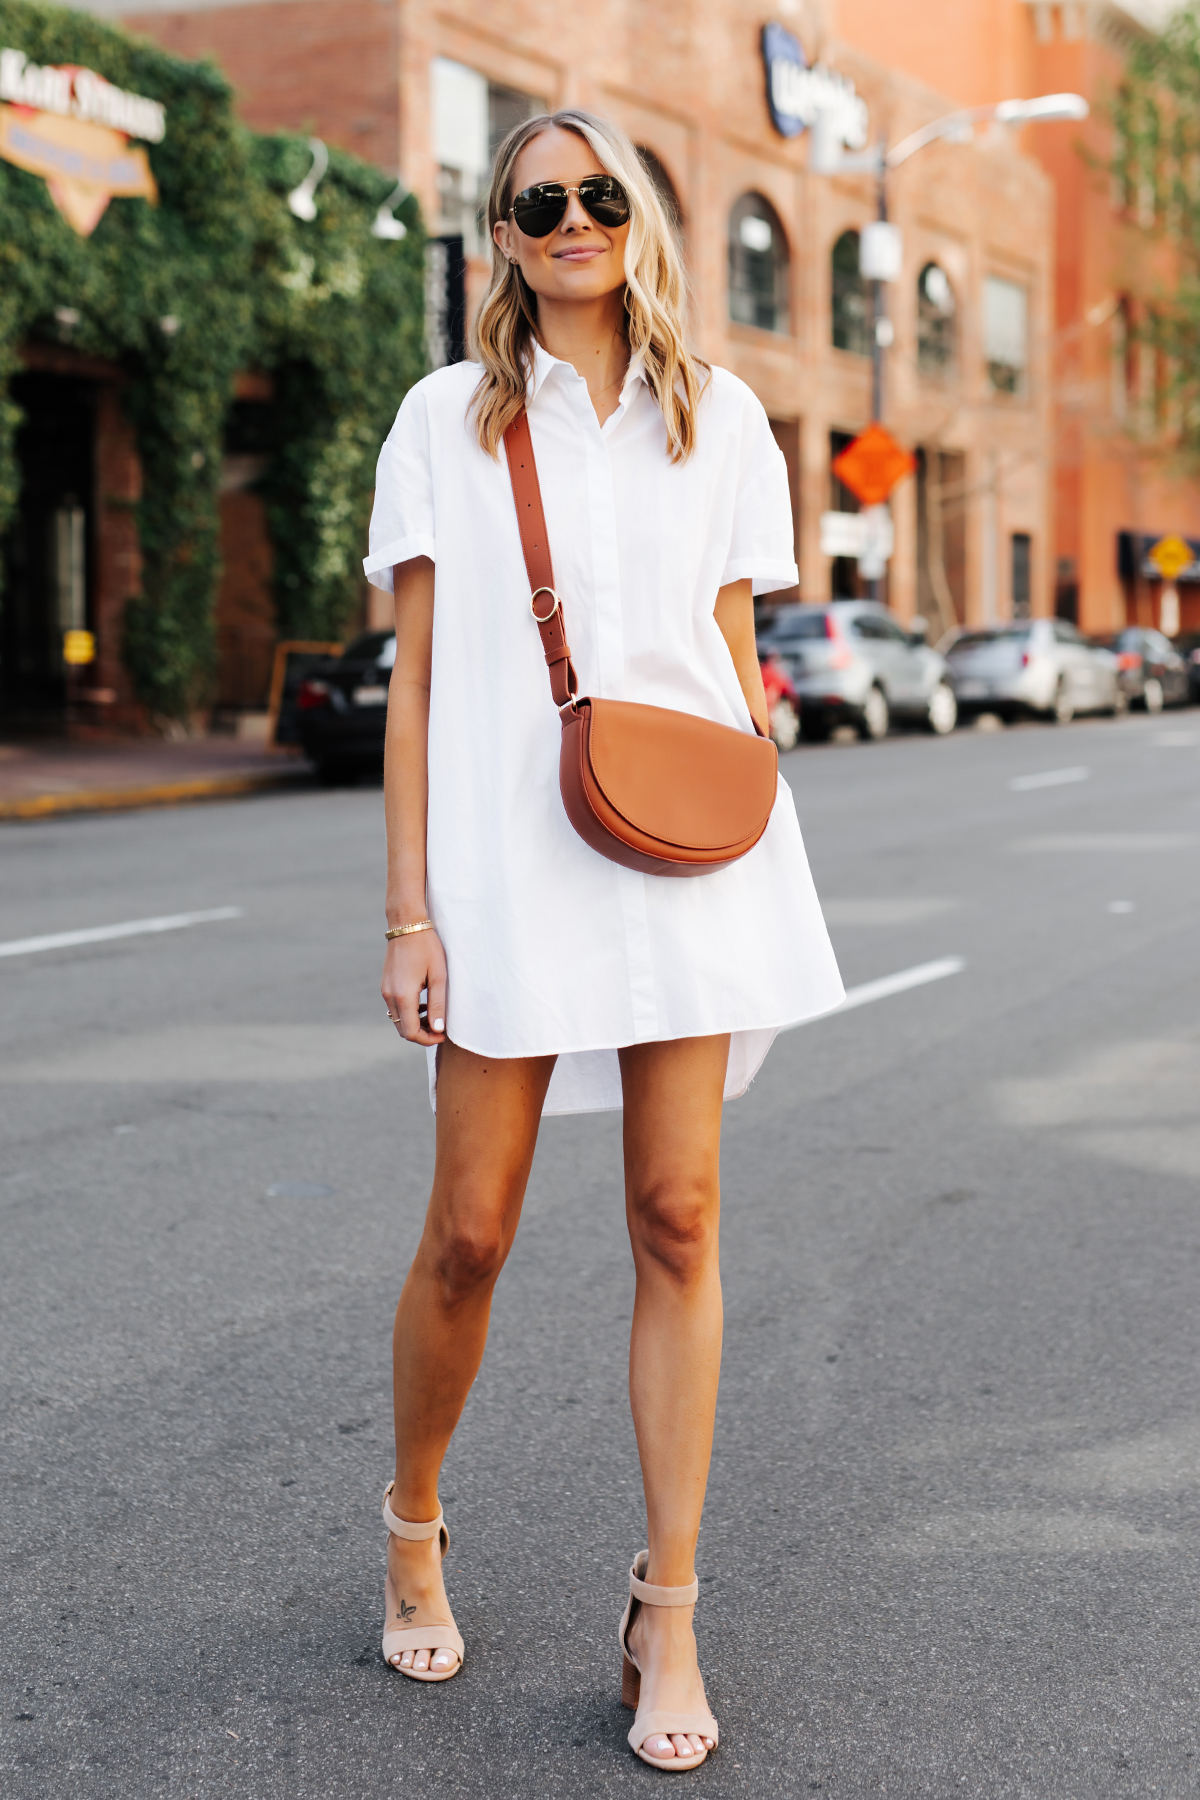 Blonde Woman Wearing White Shirtdress Tan Sandals Cuyana Half Moon Bag Caramel Fashion Jackson San Diego Fashion Blogger Street Style